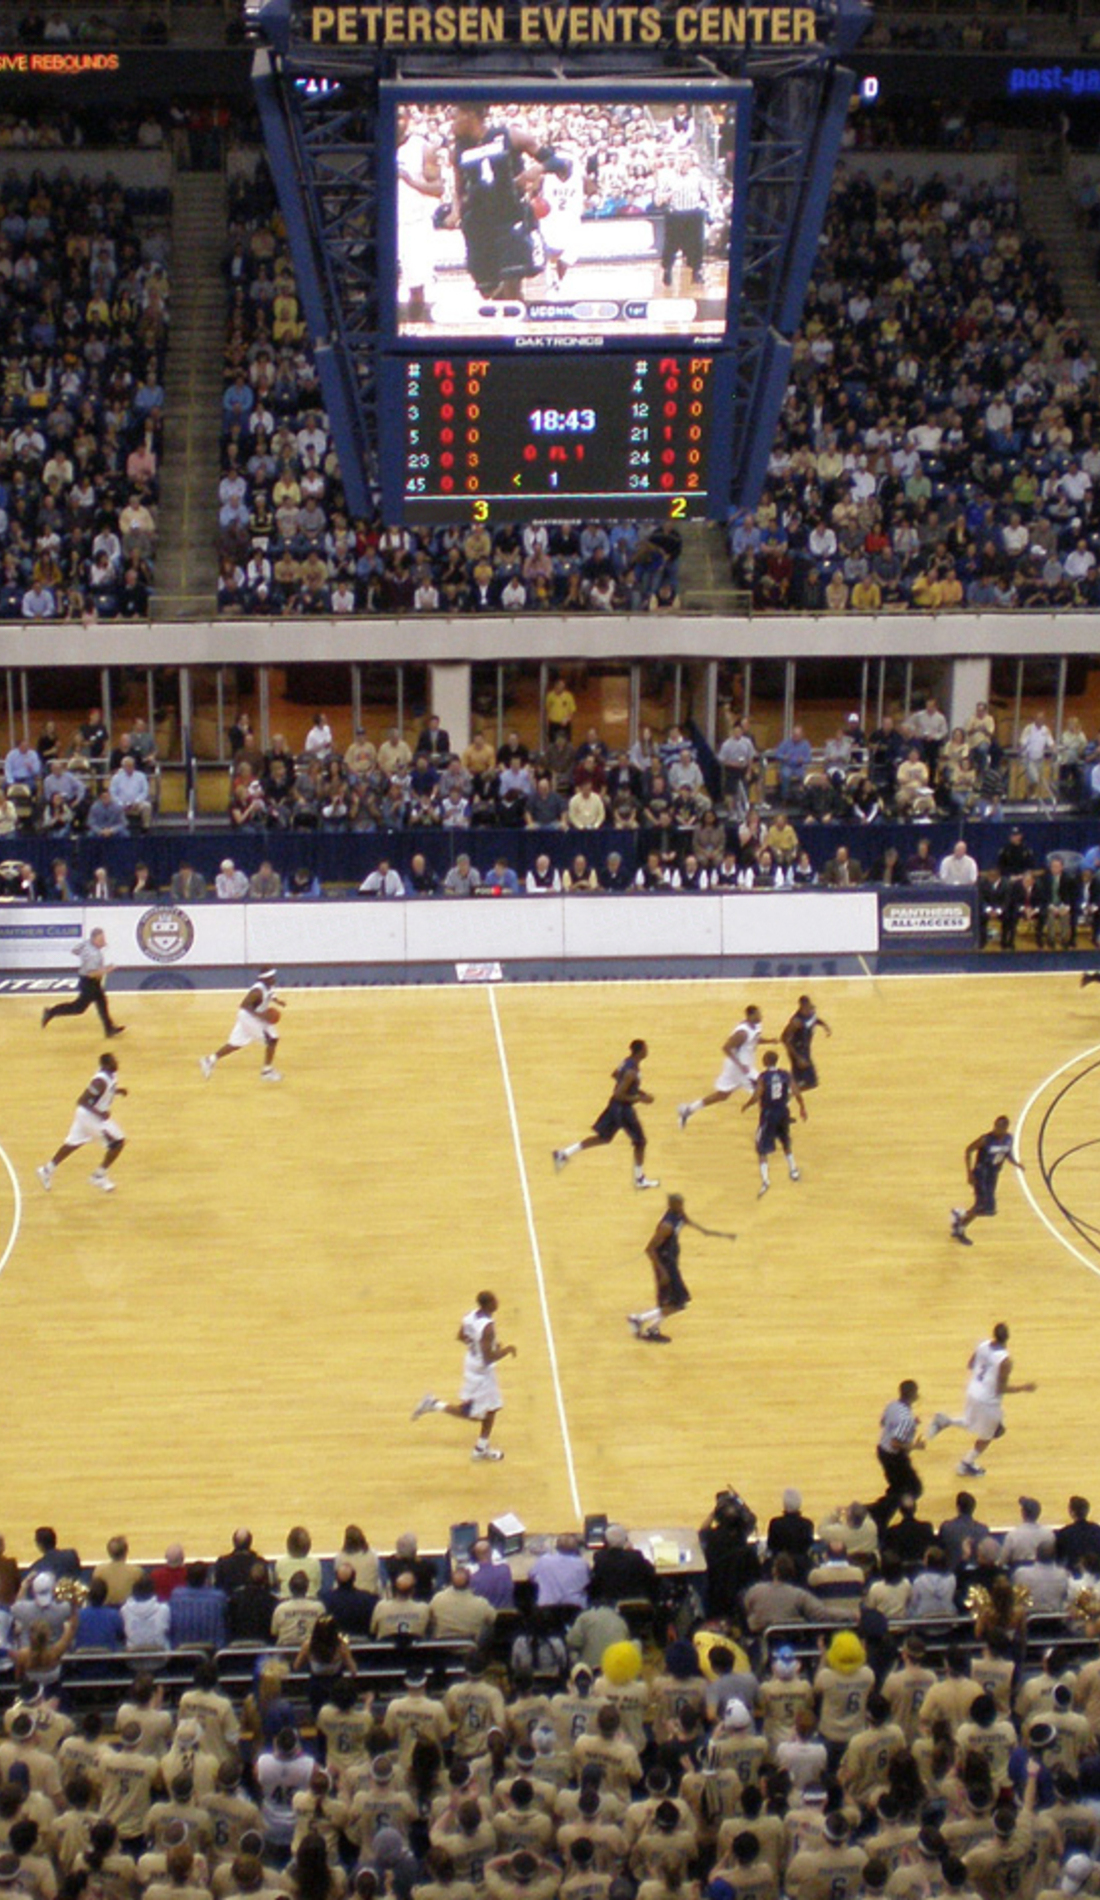 A Pittsburgh Panthers Basketball live event